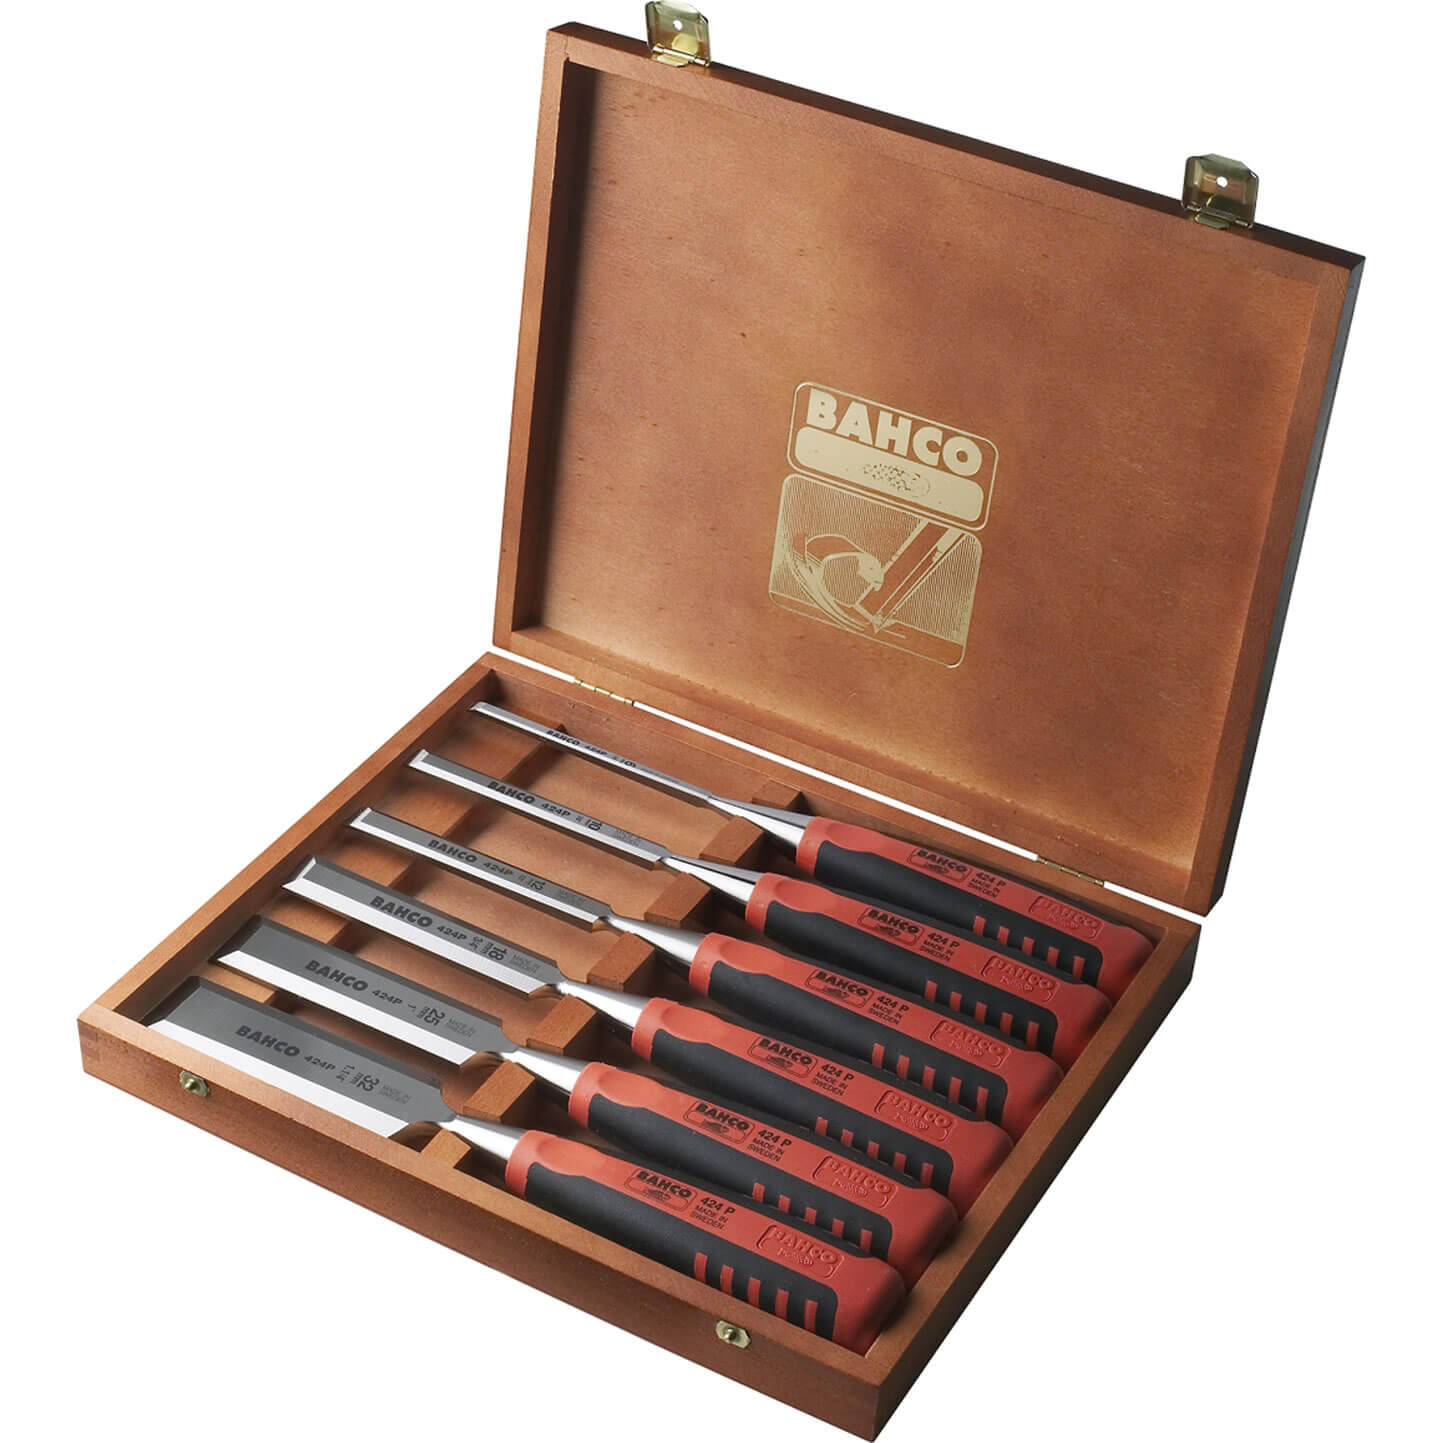 Bahco 6 Piece 424P-S6 Bevel Edge Chisel Set